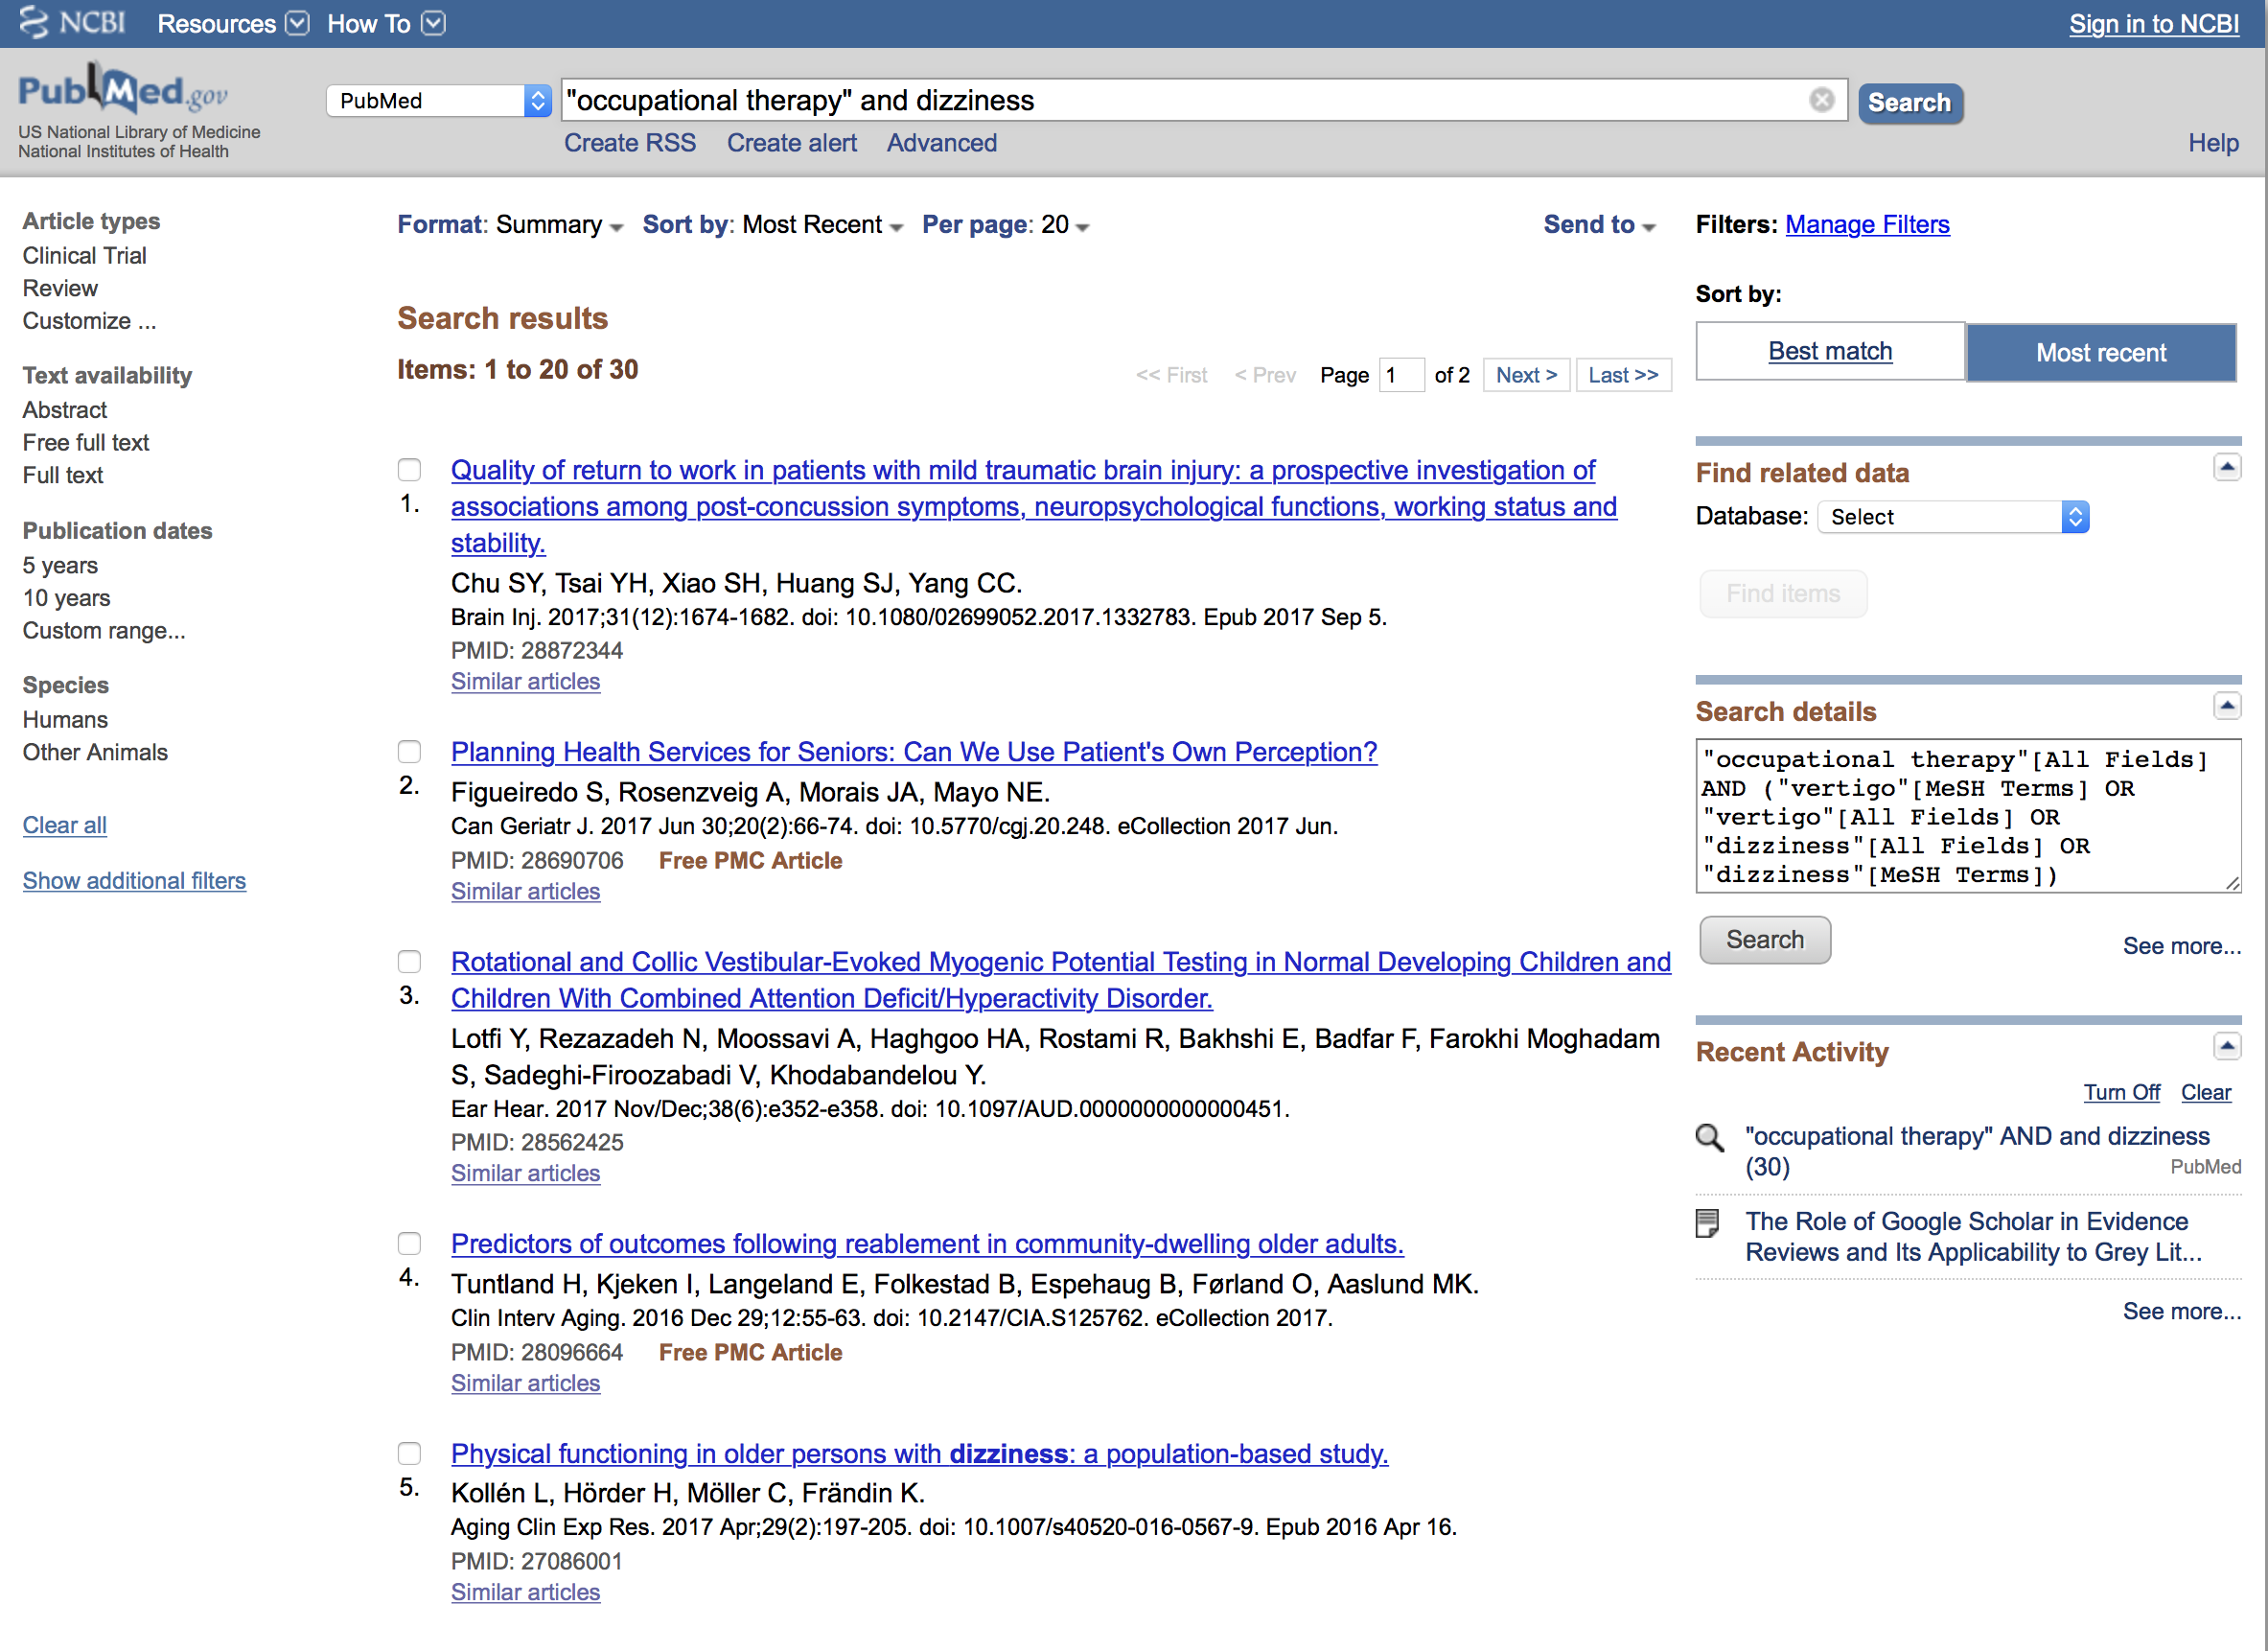 A sample of what PubMed pulls when you search for occupational therapy and dizziness.